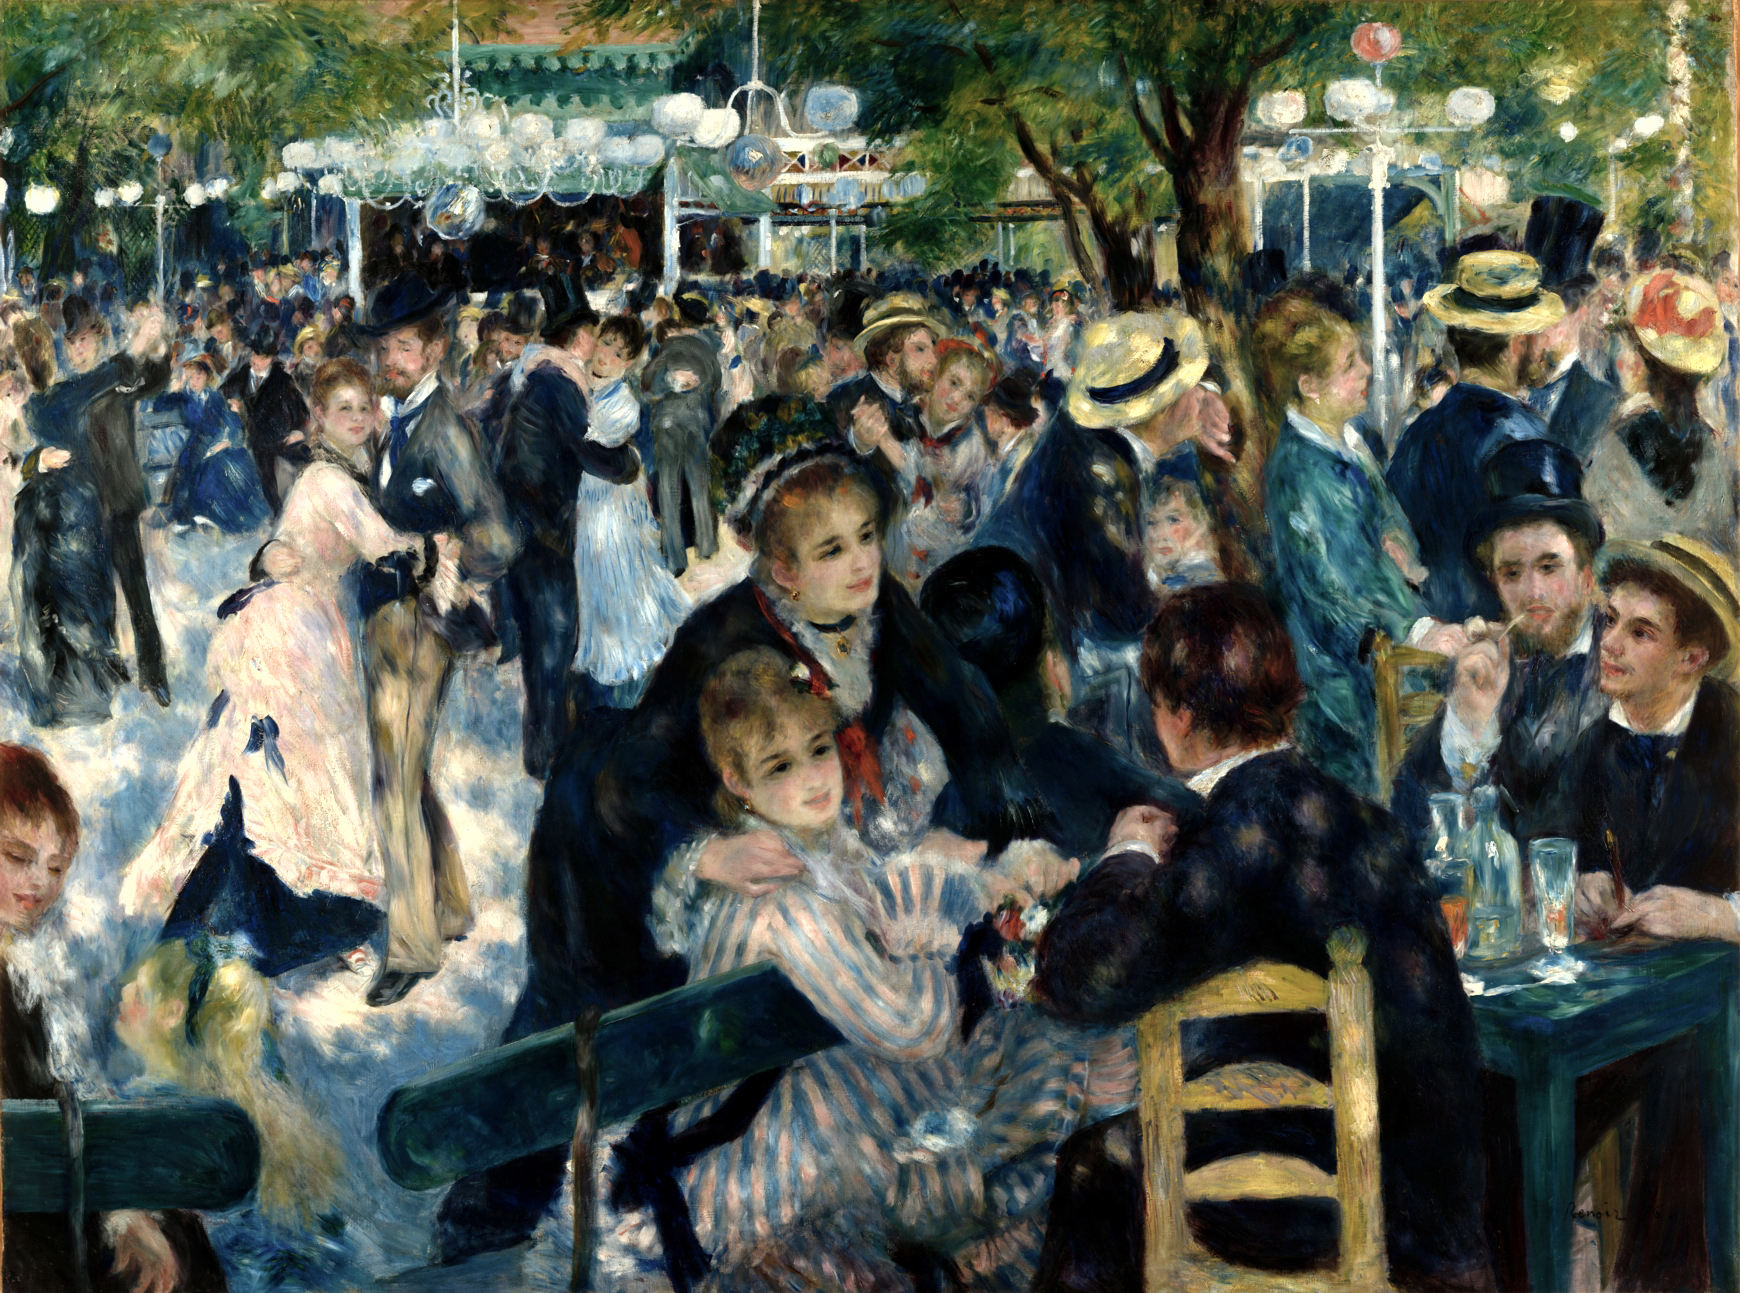 https://upload.wikimedia.org/wikipedia/commons/4/40/Auguste_Renoir_-_Dance_at_Le_Moulin_de_la_Galette_-_Mus%C3%A9e_d'Orsay_RF_2739_(derivative_work_-_AutoContrast_edit_in_LCH_space).jpg